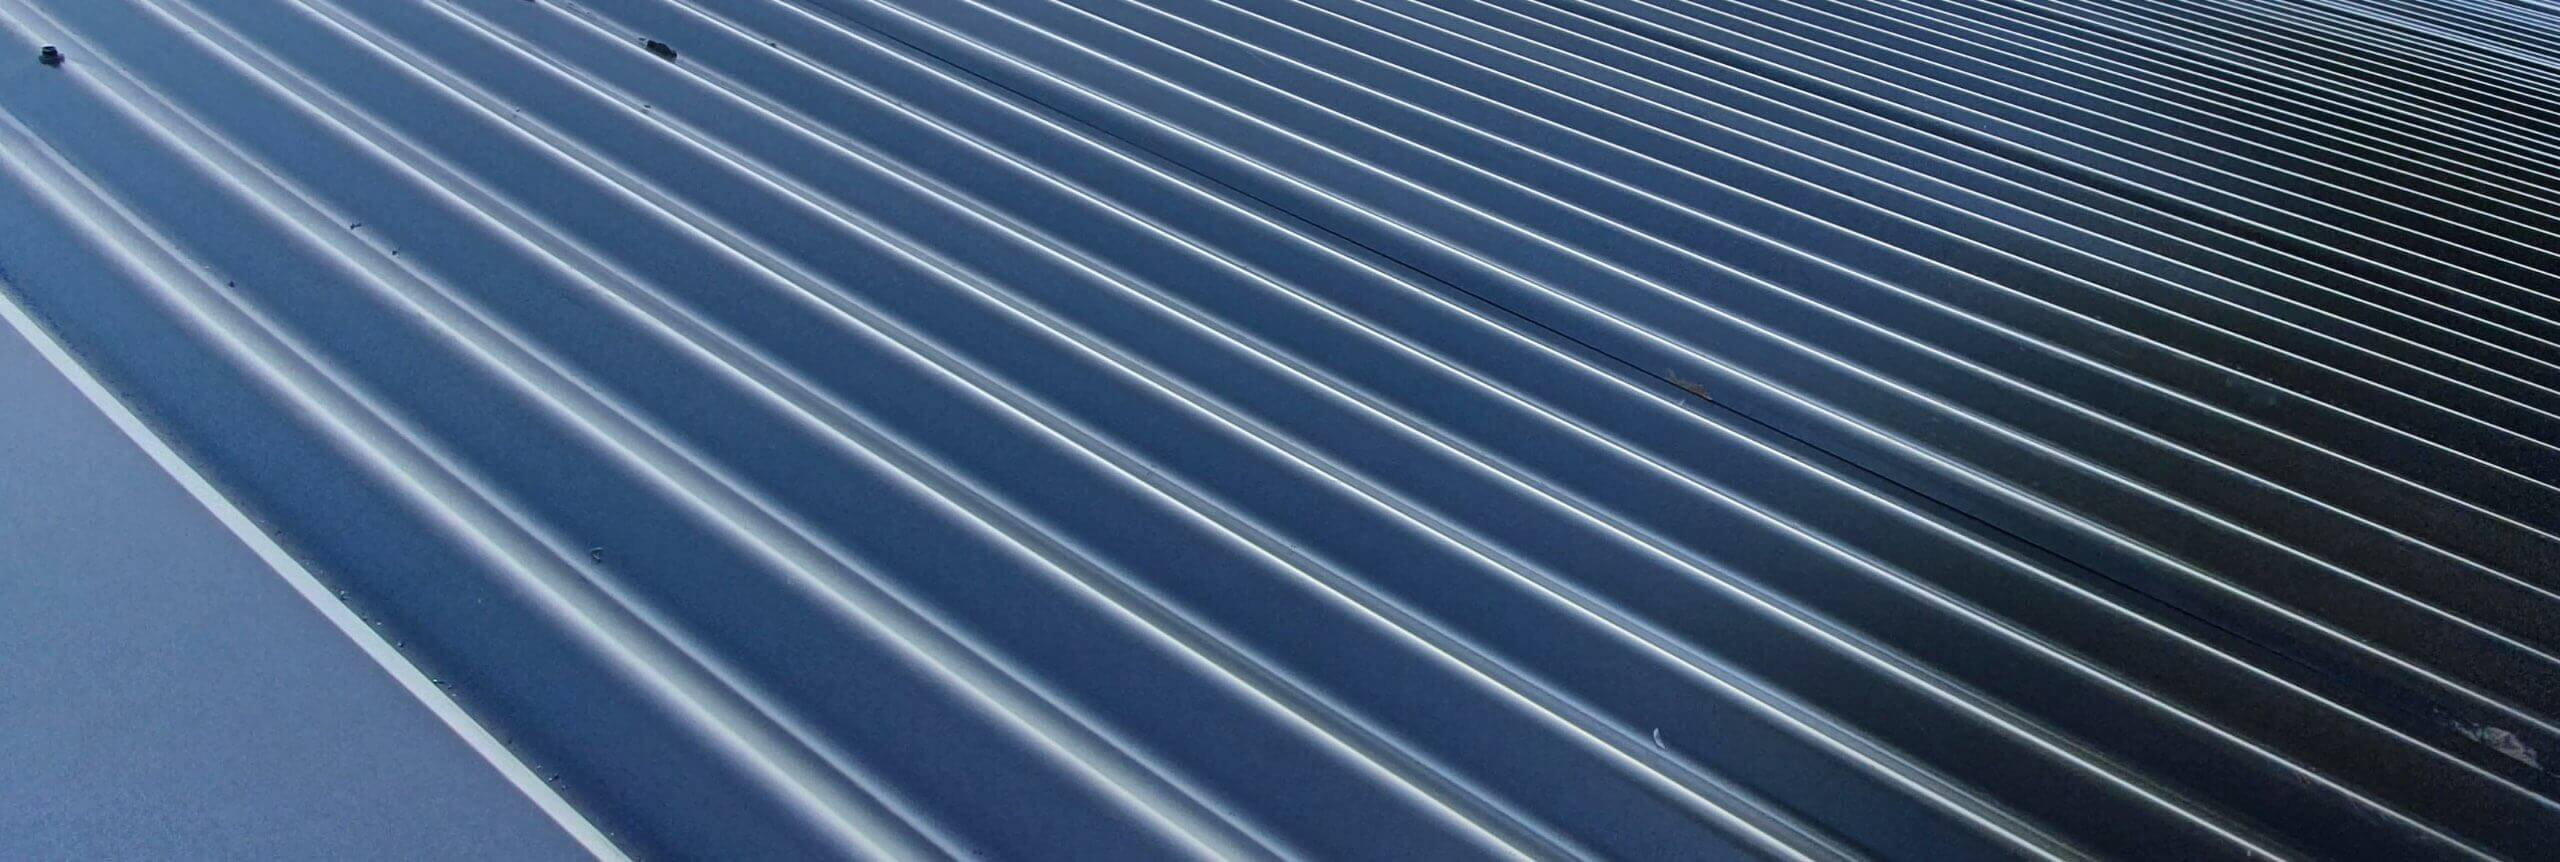 Close up photo of metal roofing